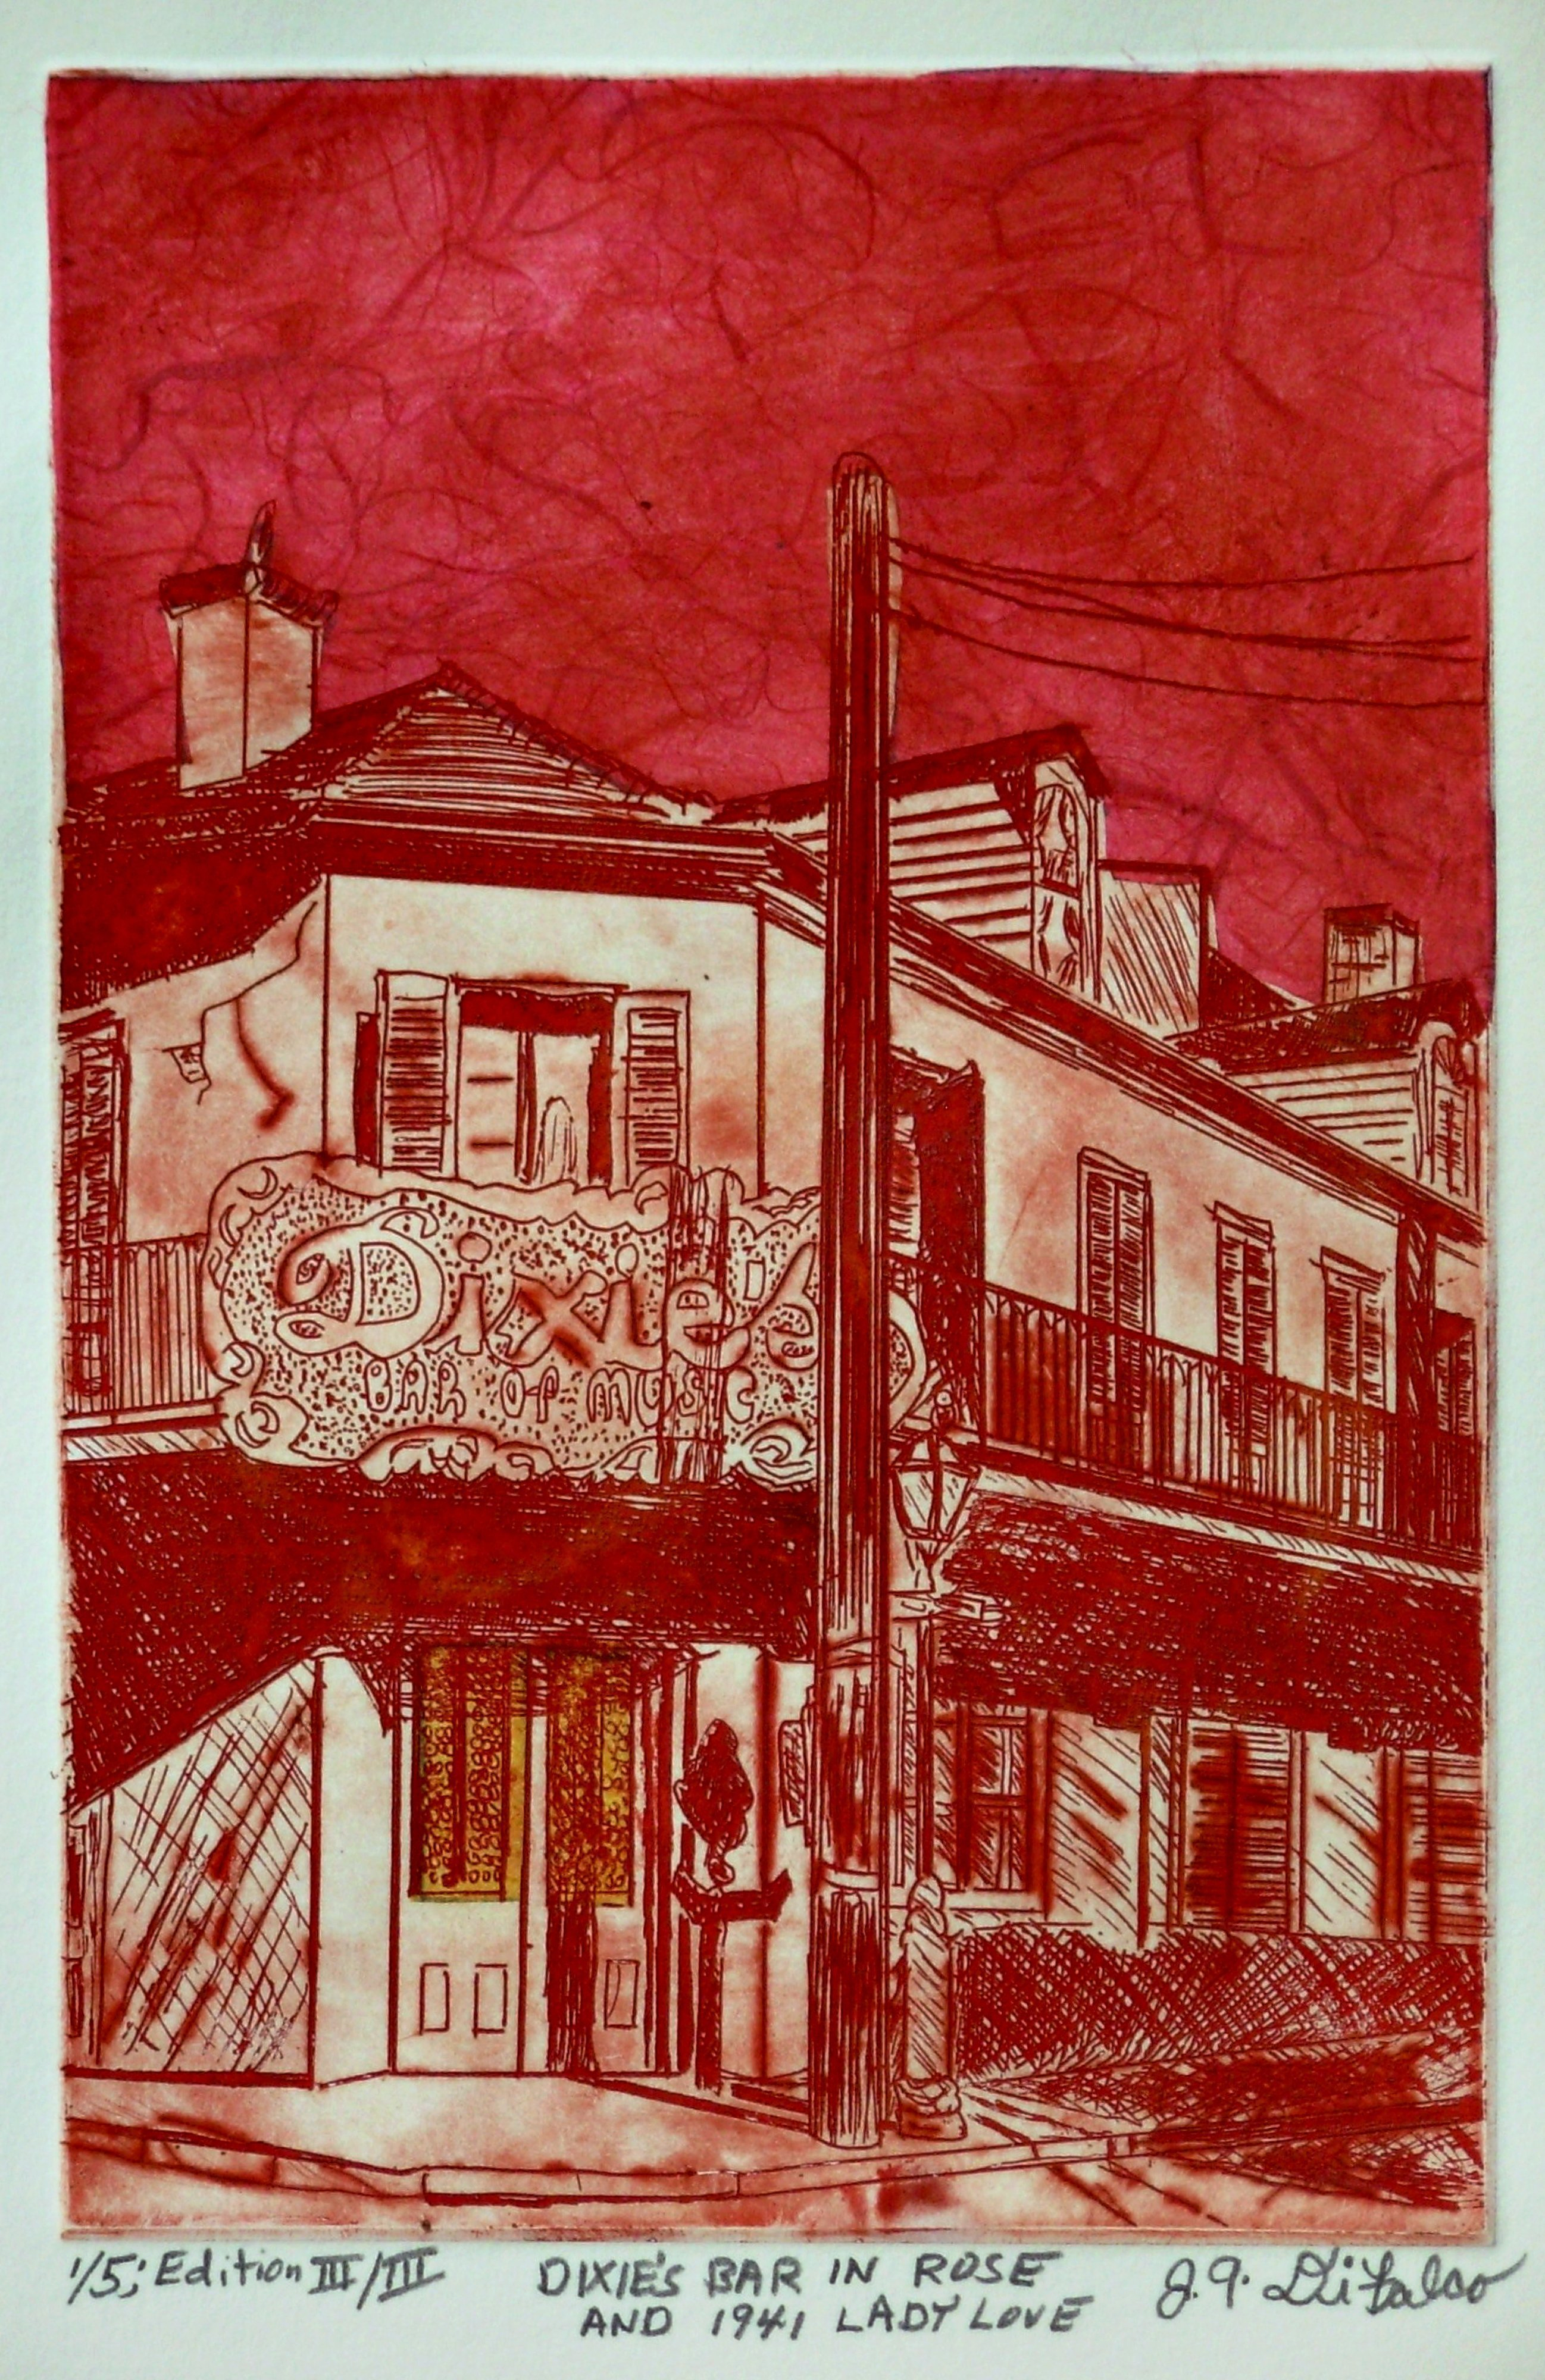 Jerry  Di Falco: 'DIXIES BAR IN ROSE AND 1941 LADY LOVE', 2016 Etching, Vintage. Artist Description: DIXIES BAR IN ROSE AND 1941 LADY LOVE. This etching, which is part of my New Orleans Collection, shows the building at 701 Bourbon Street at the intersection of St. Peters. The structure is also featured in another DiFalco etching that shows the building when it functioned in ...